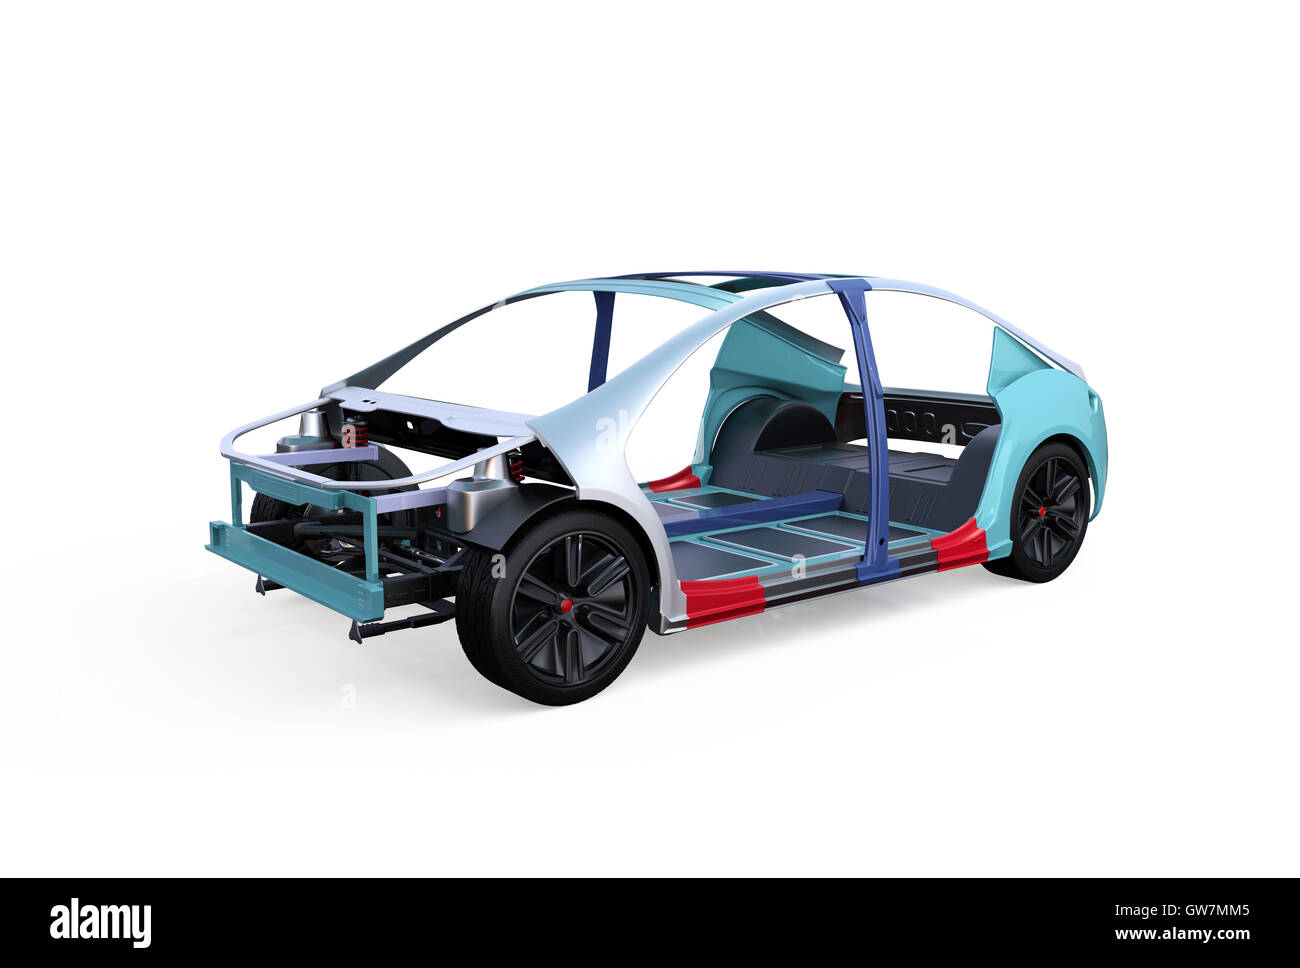 Unibody Car Chassis Stock Photos & Unibody Car Chassis Stock Images ...